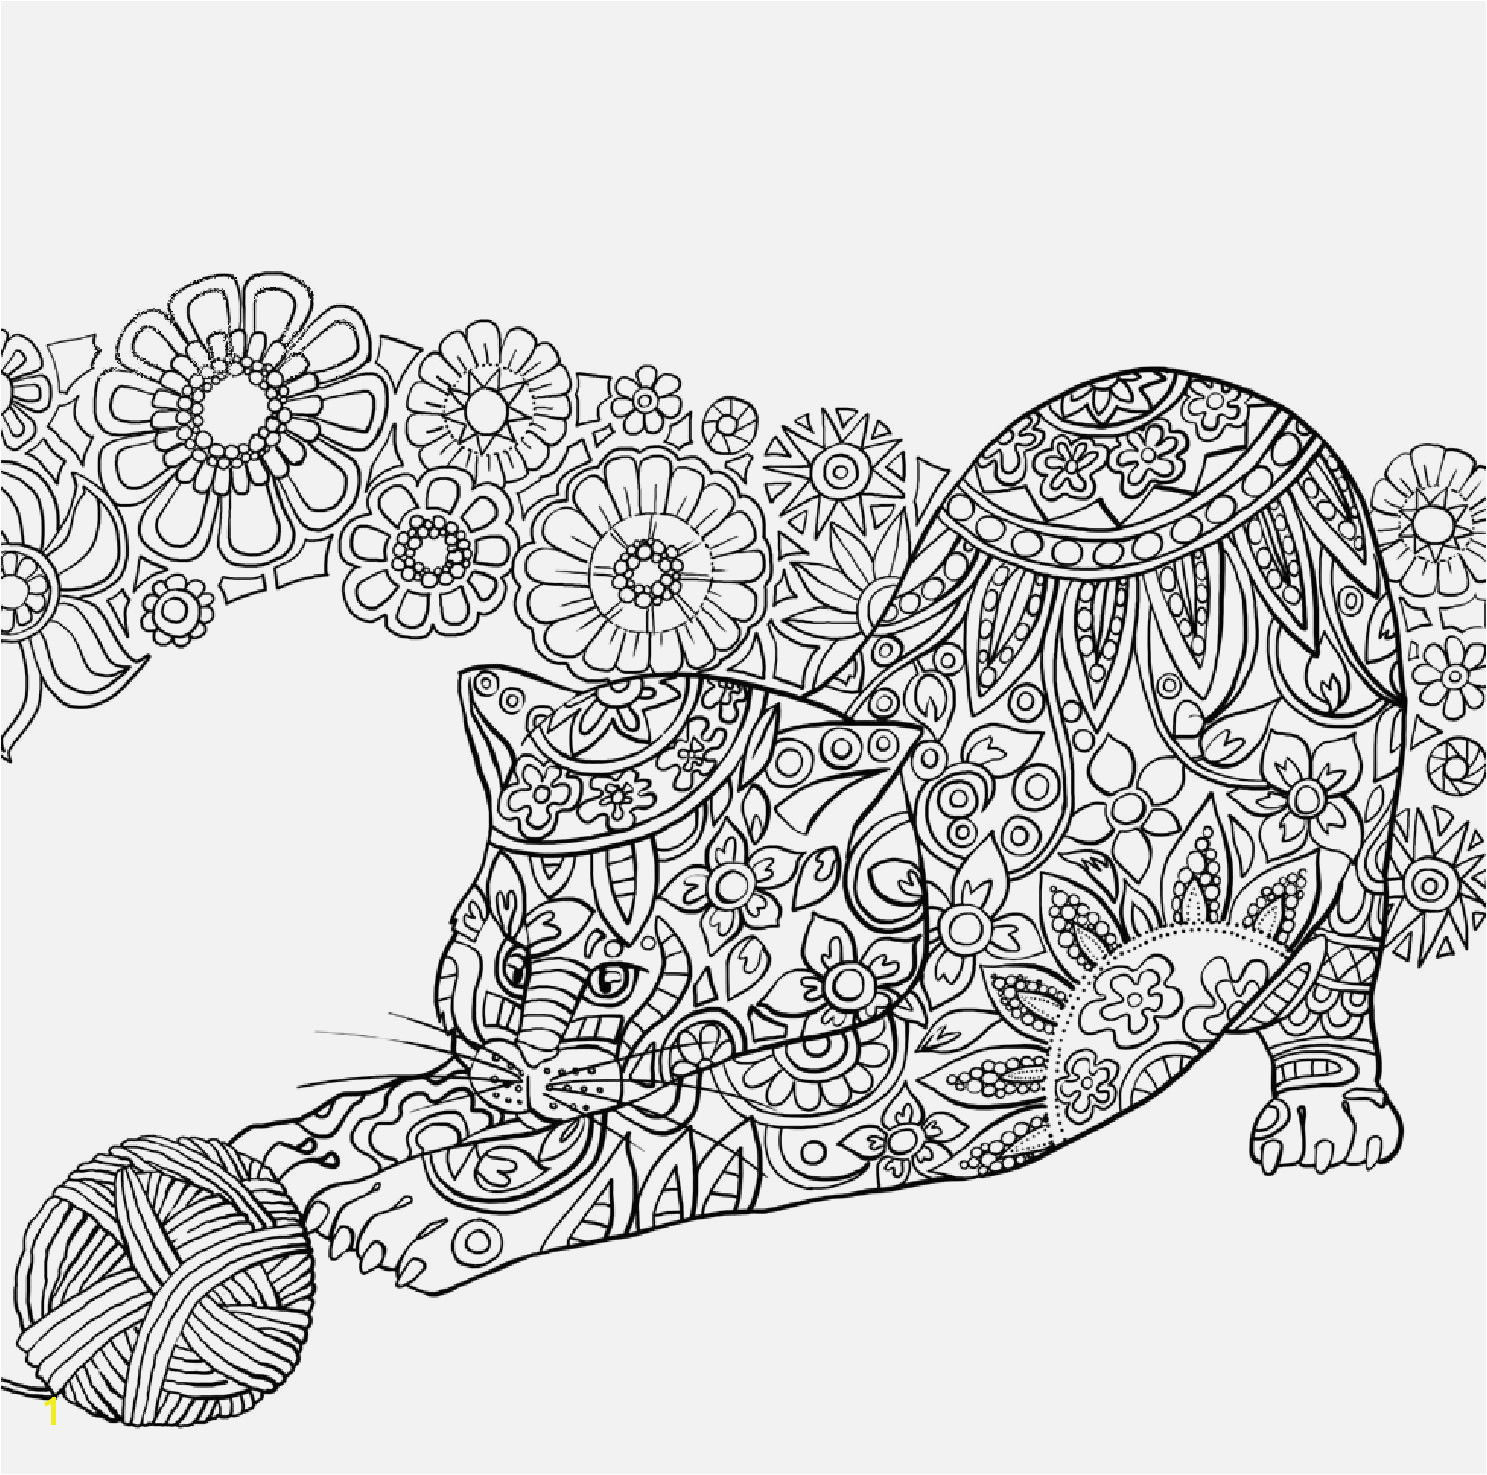 Free Coloring Pages for Kids Printable Mandala Coloring Pages Animals Cool Od Dog Coloring Pages